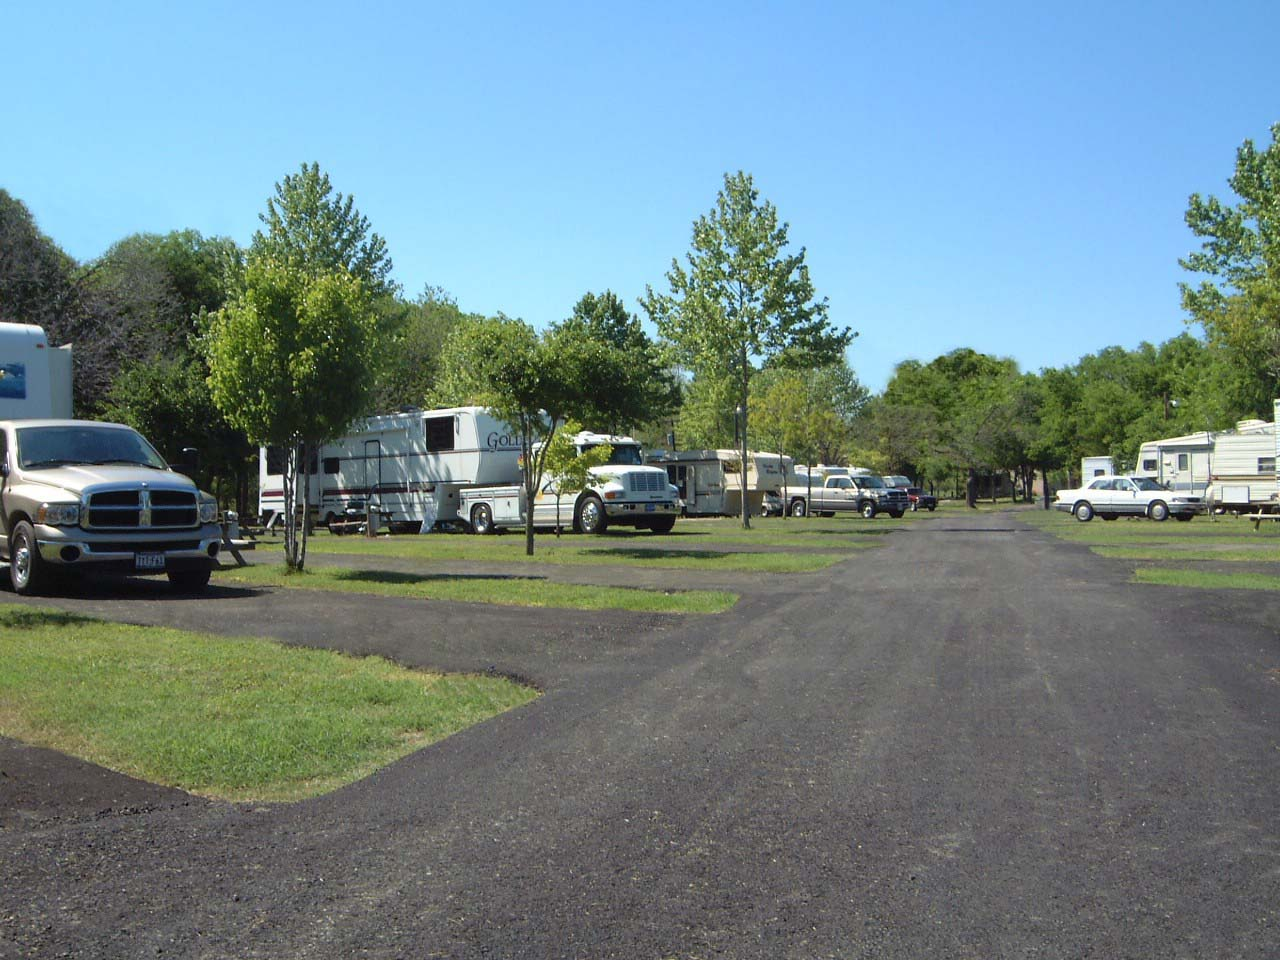 rv hook up austin tx Welcome to shady river rv resort in georgetown, texas our rv park has easy access to hwy 130, hwy i-35 going through the heart of central texas cities (austin, round rock, georgetown) our rv park is in a country setting, with easy day trip ability to really great cities.